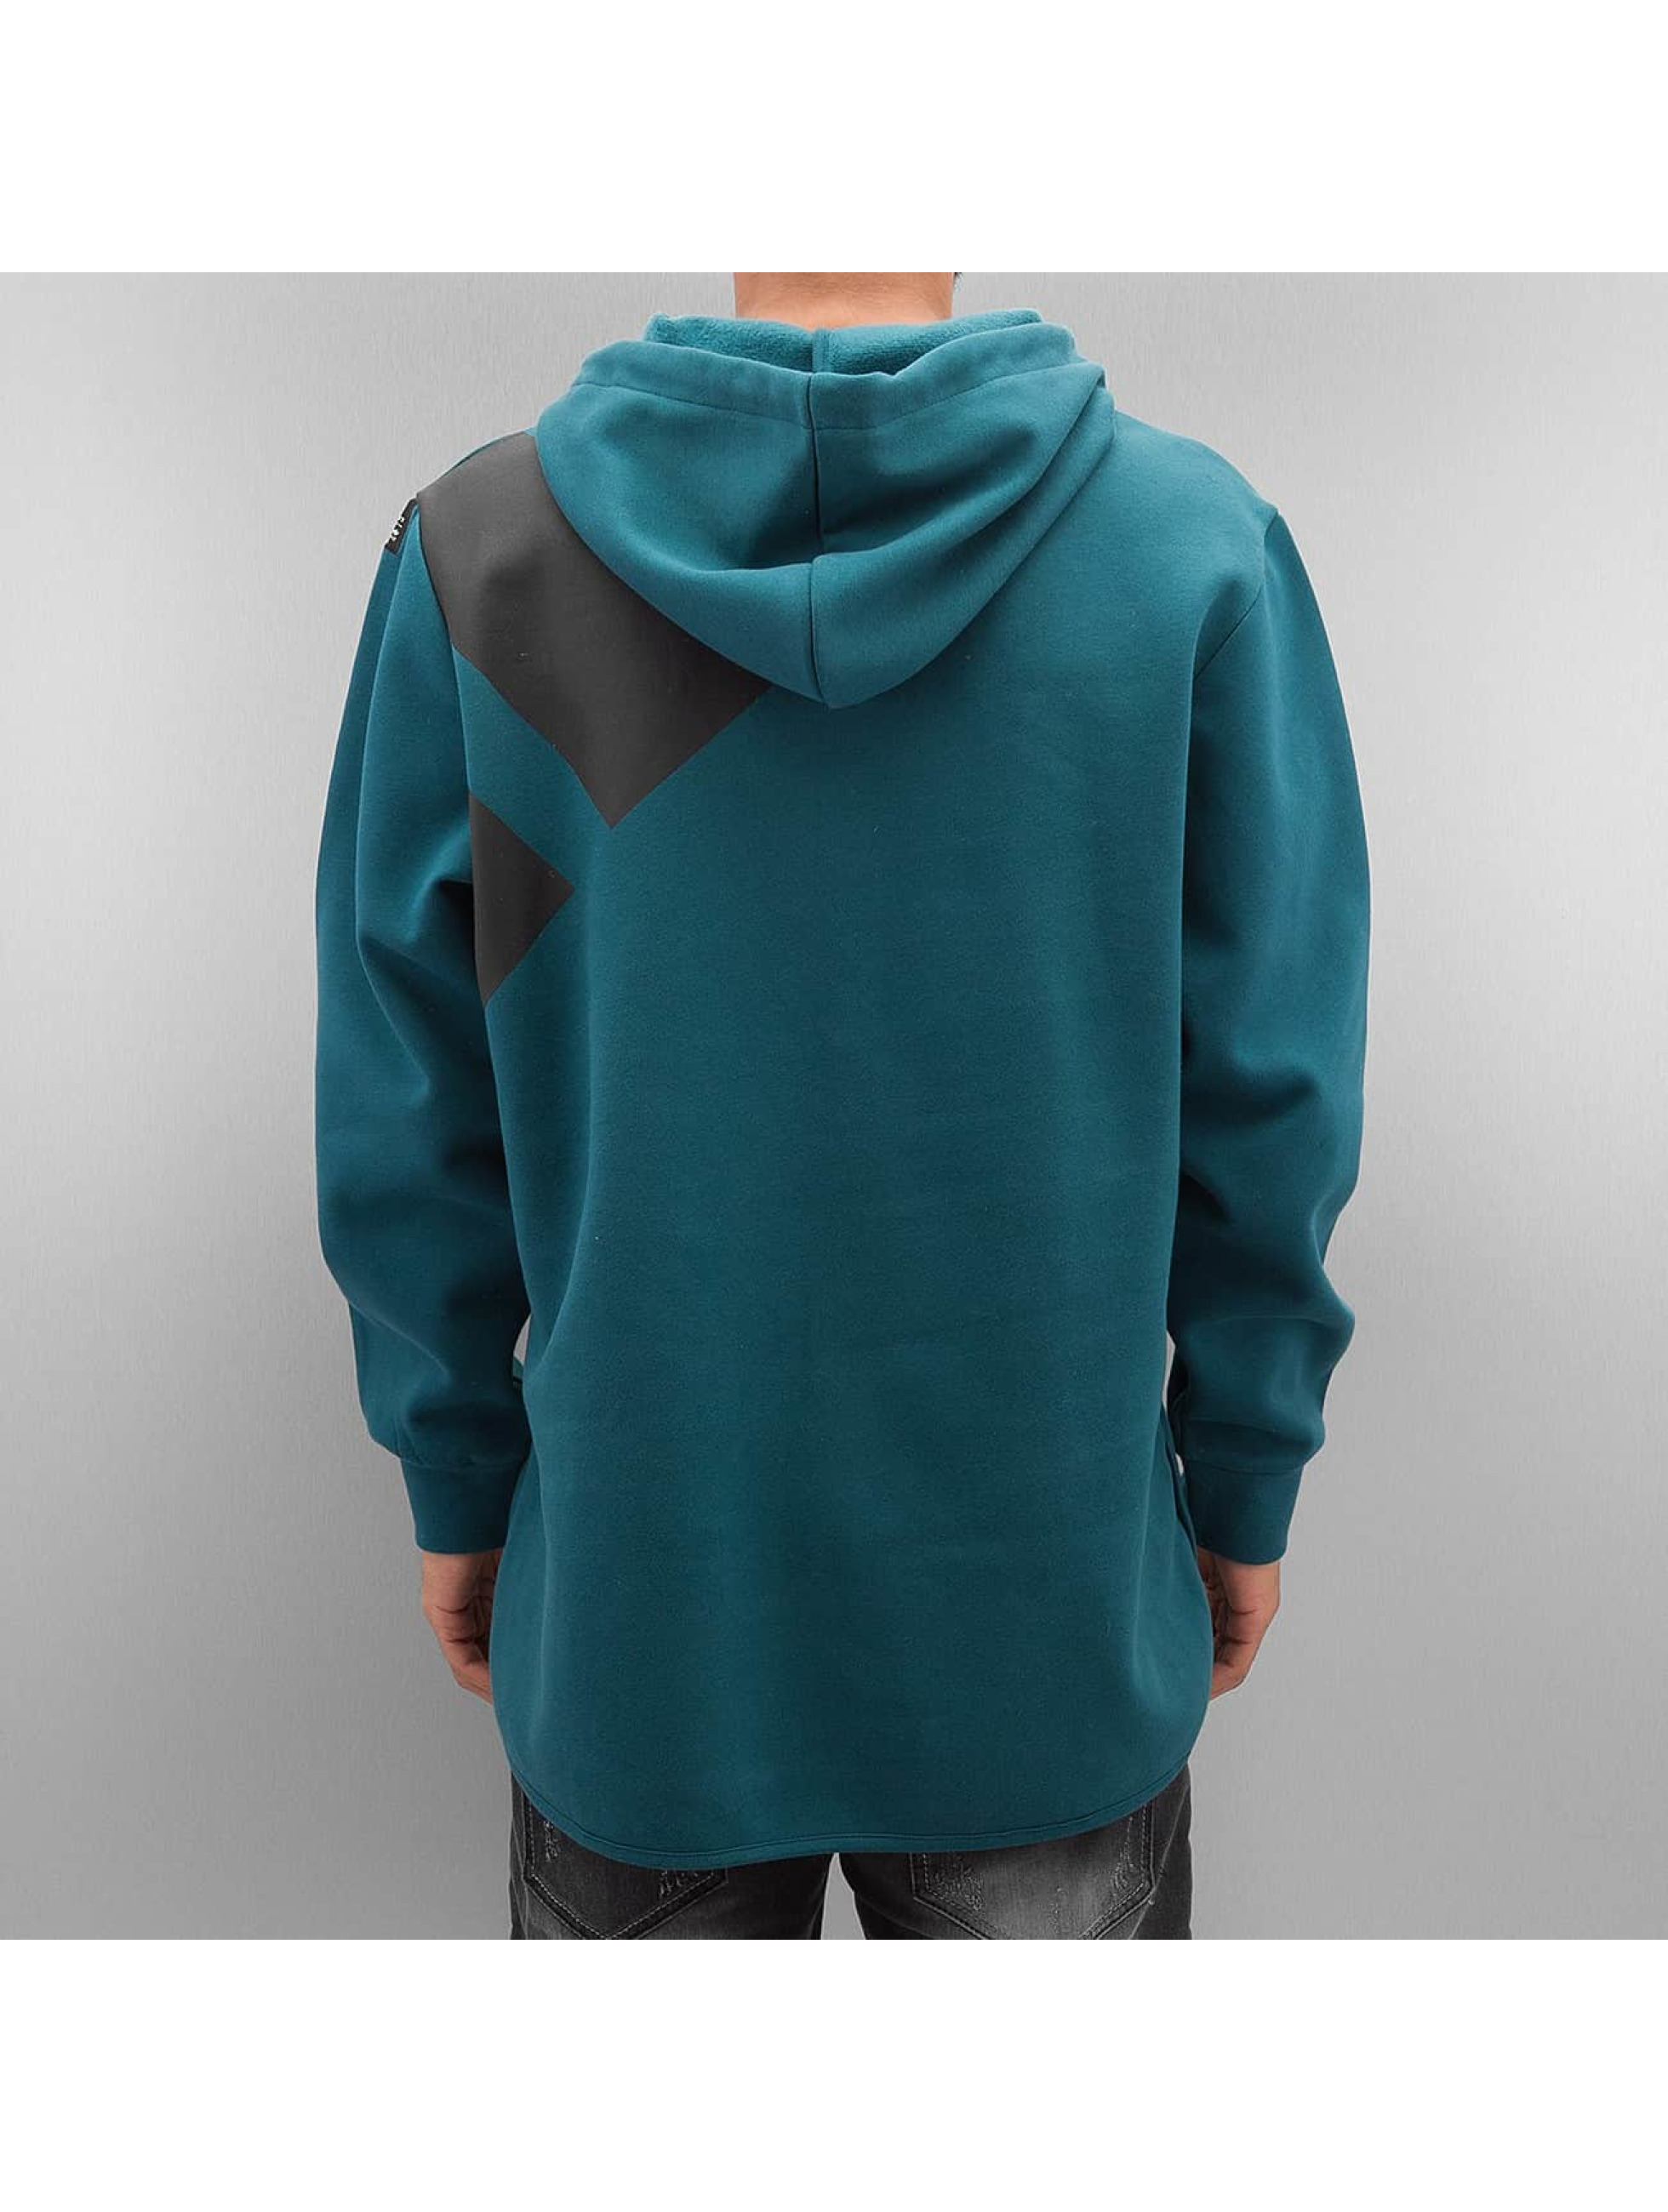 adidas Hoodie Equipment Scallop green